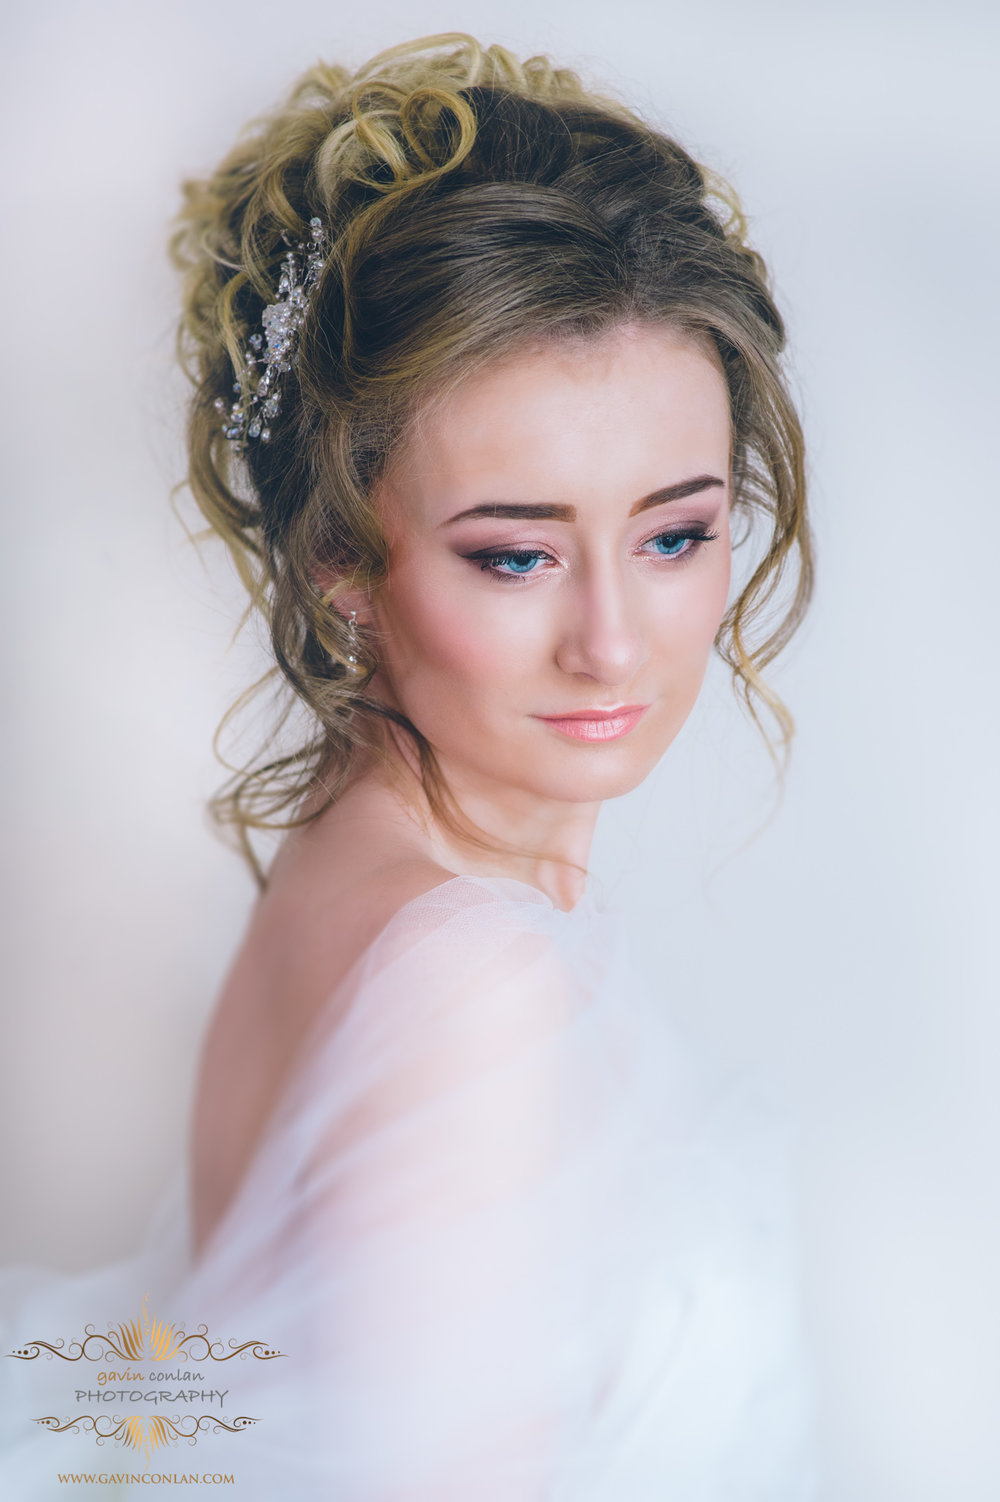 creative-bridal-hair-make-up-jewellery-photo-shoot-gavinconlanphotography-12